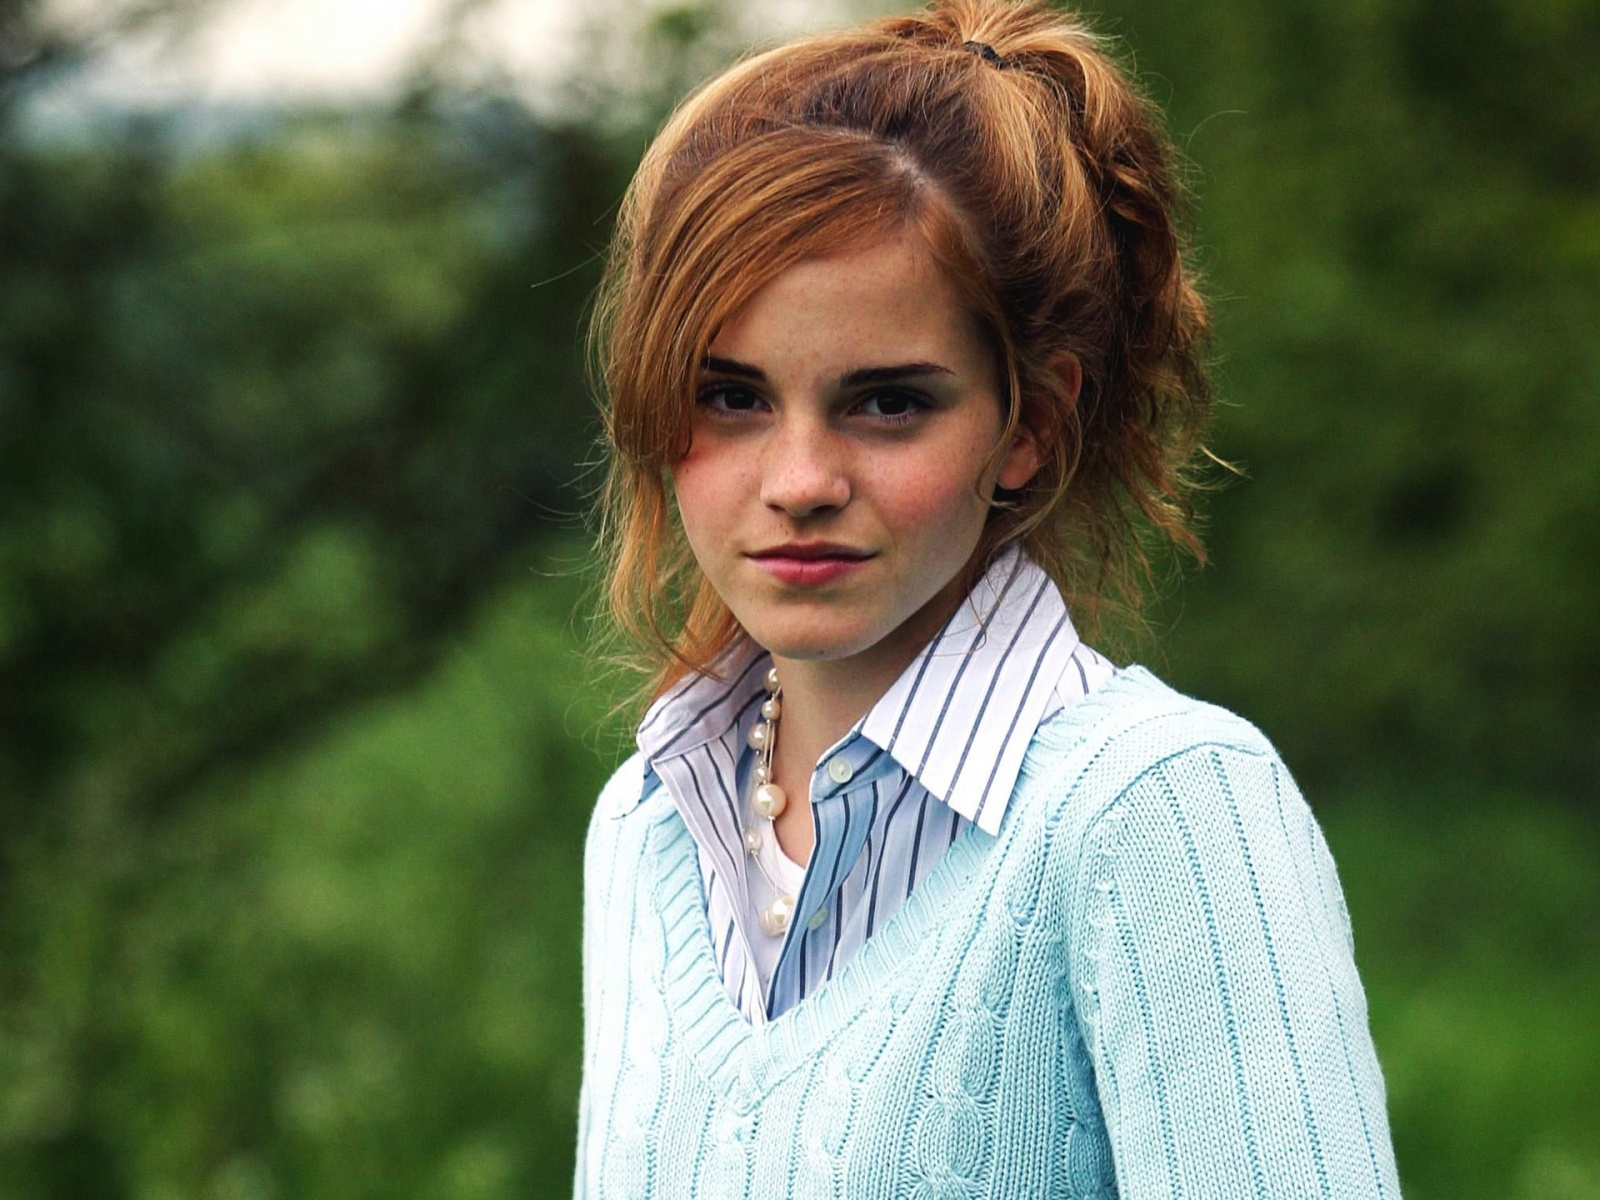 Nature wallpaper high resolution wallpapers for free download about emma watson very high quality voltagebd Image collections